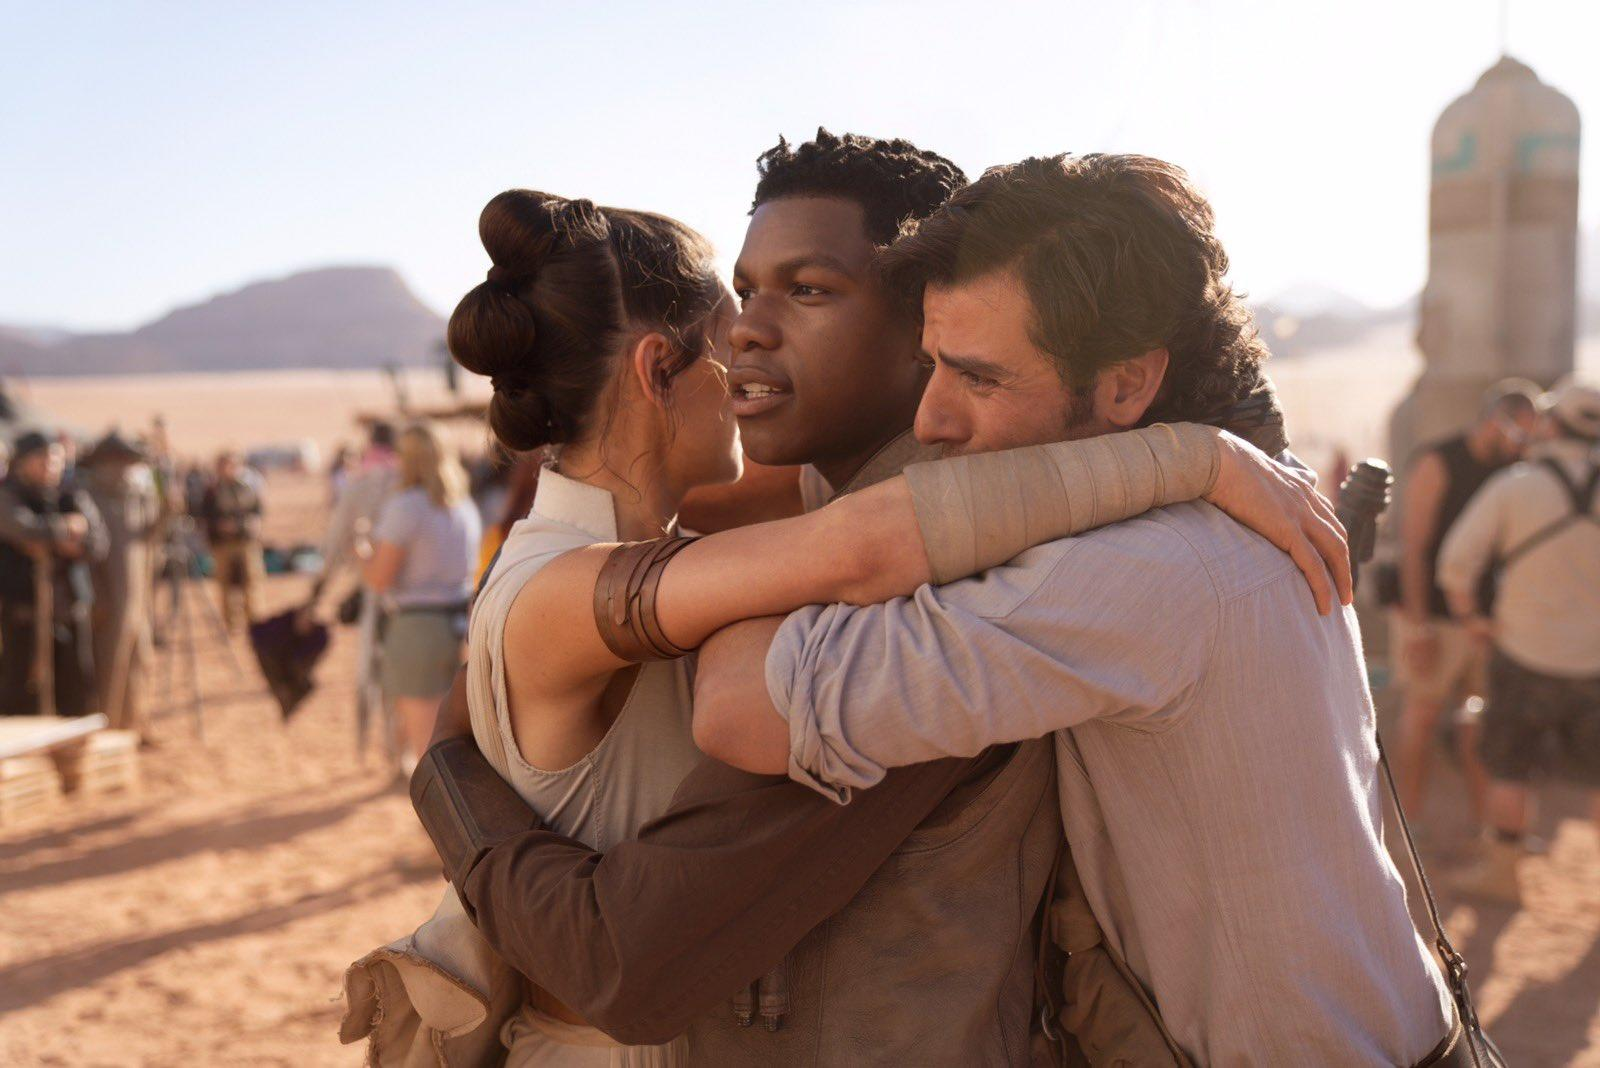 J.J. Abrams announces the end of 'Star Wars: Episode IX' with heartfelt photo: 'I'm forever indebted to you all'